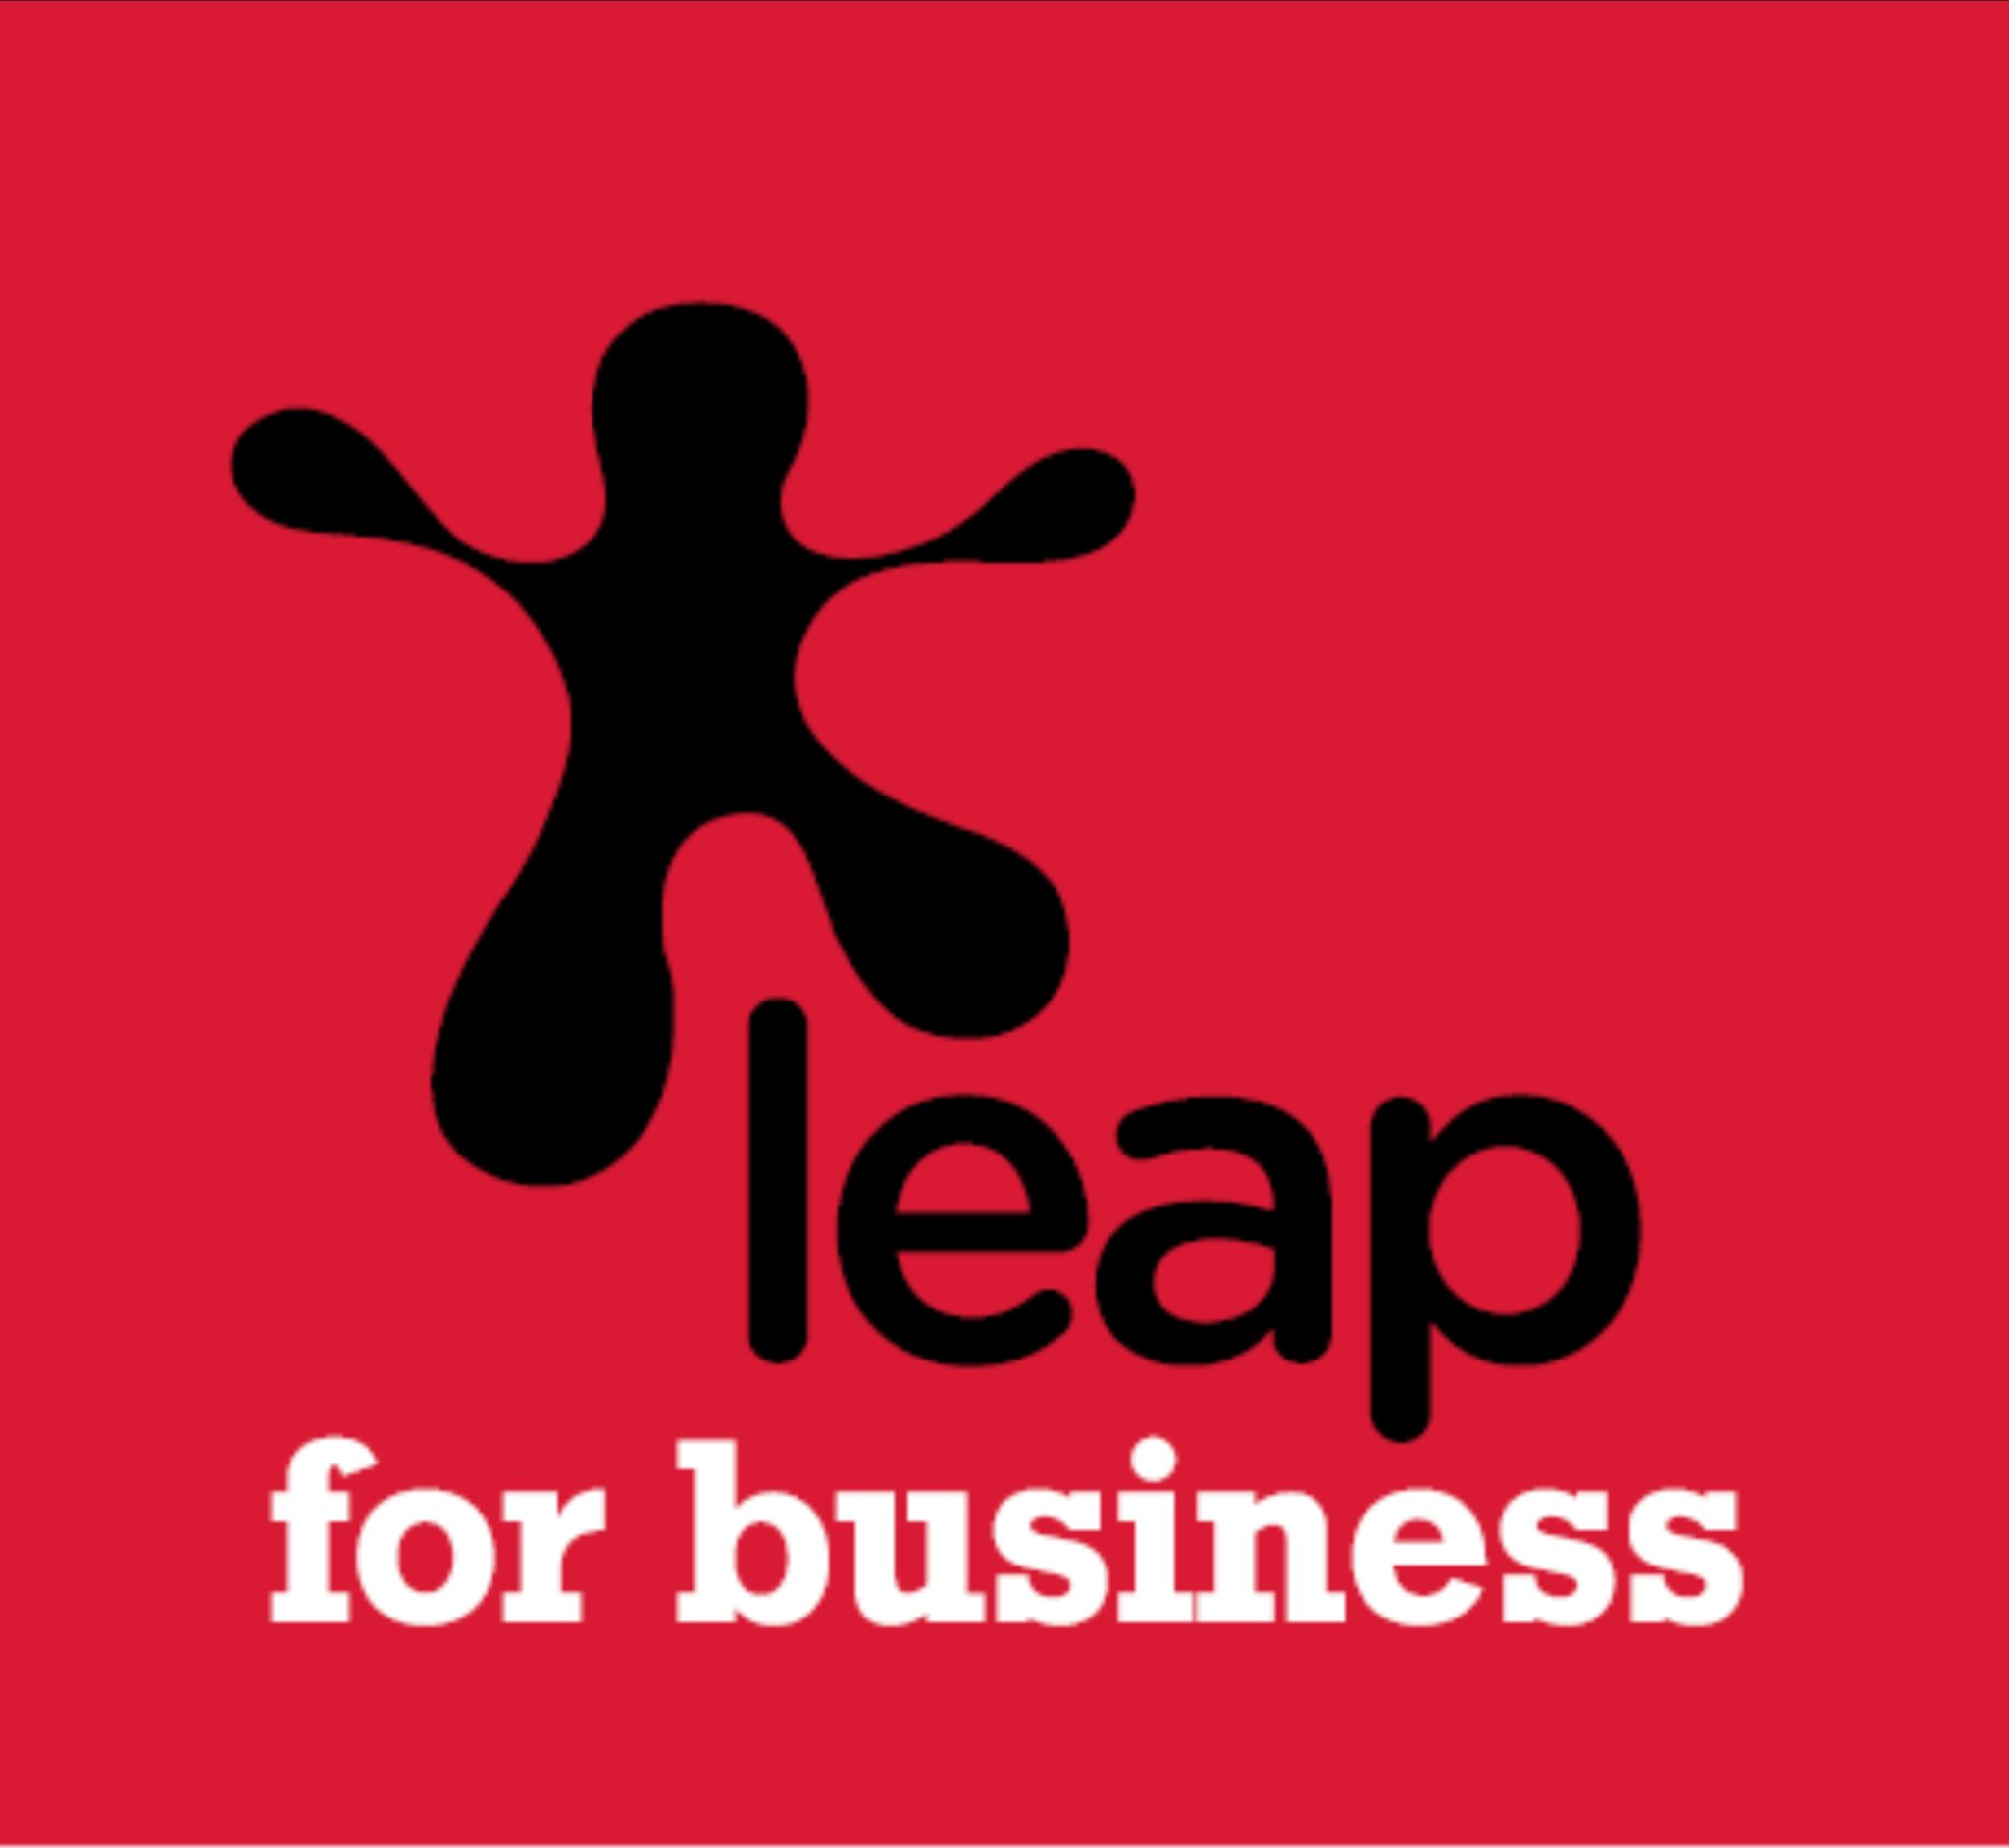 LeapBusiness